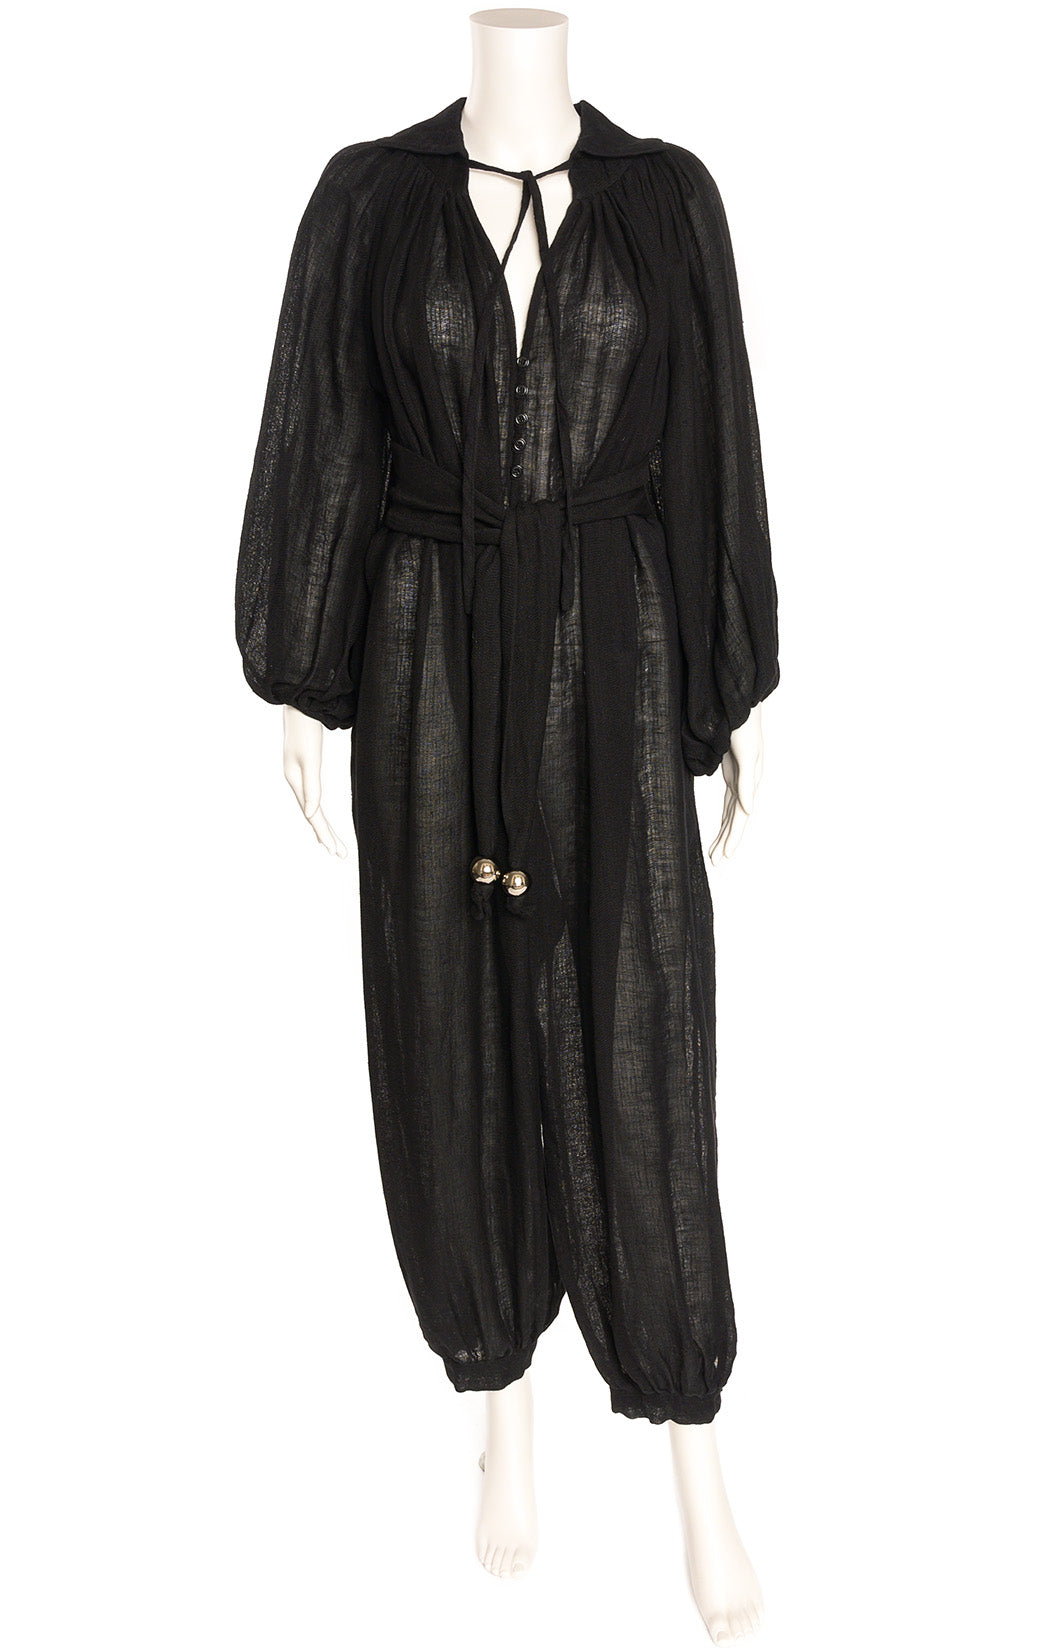 Front view of LISA MARIE FERNANDEZ  Jumpsuit  Size: no size tags fits like Medium to Large